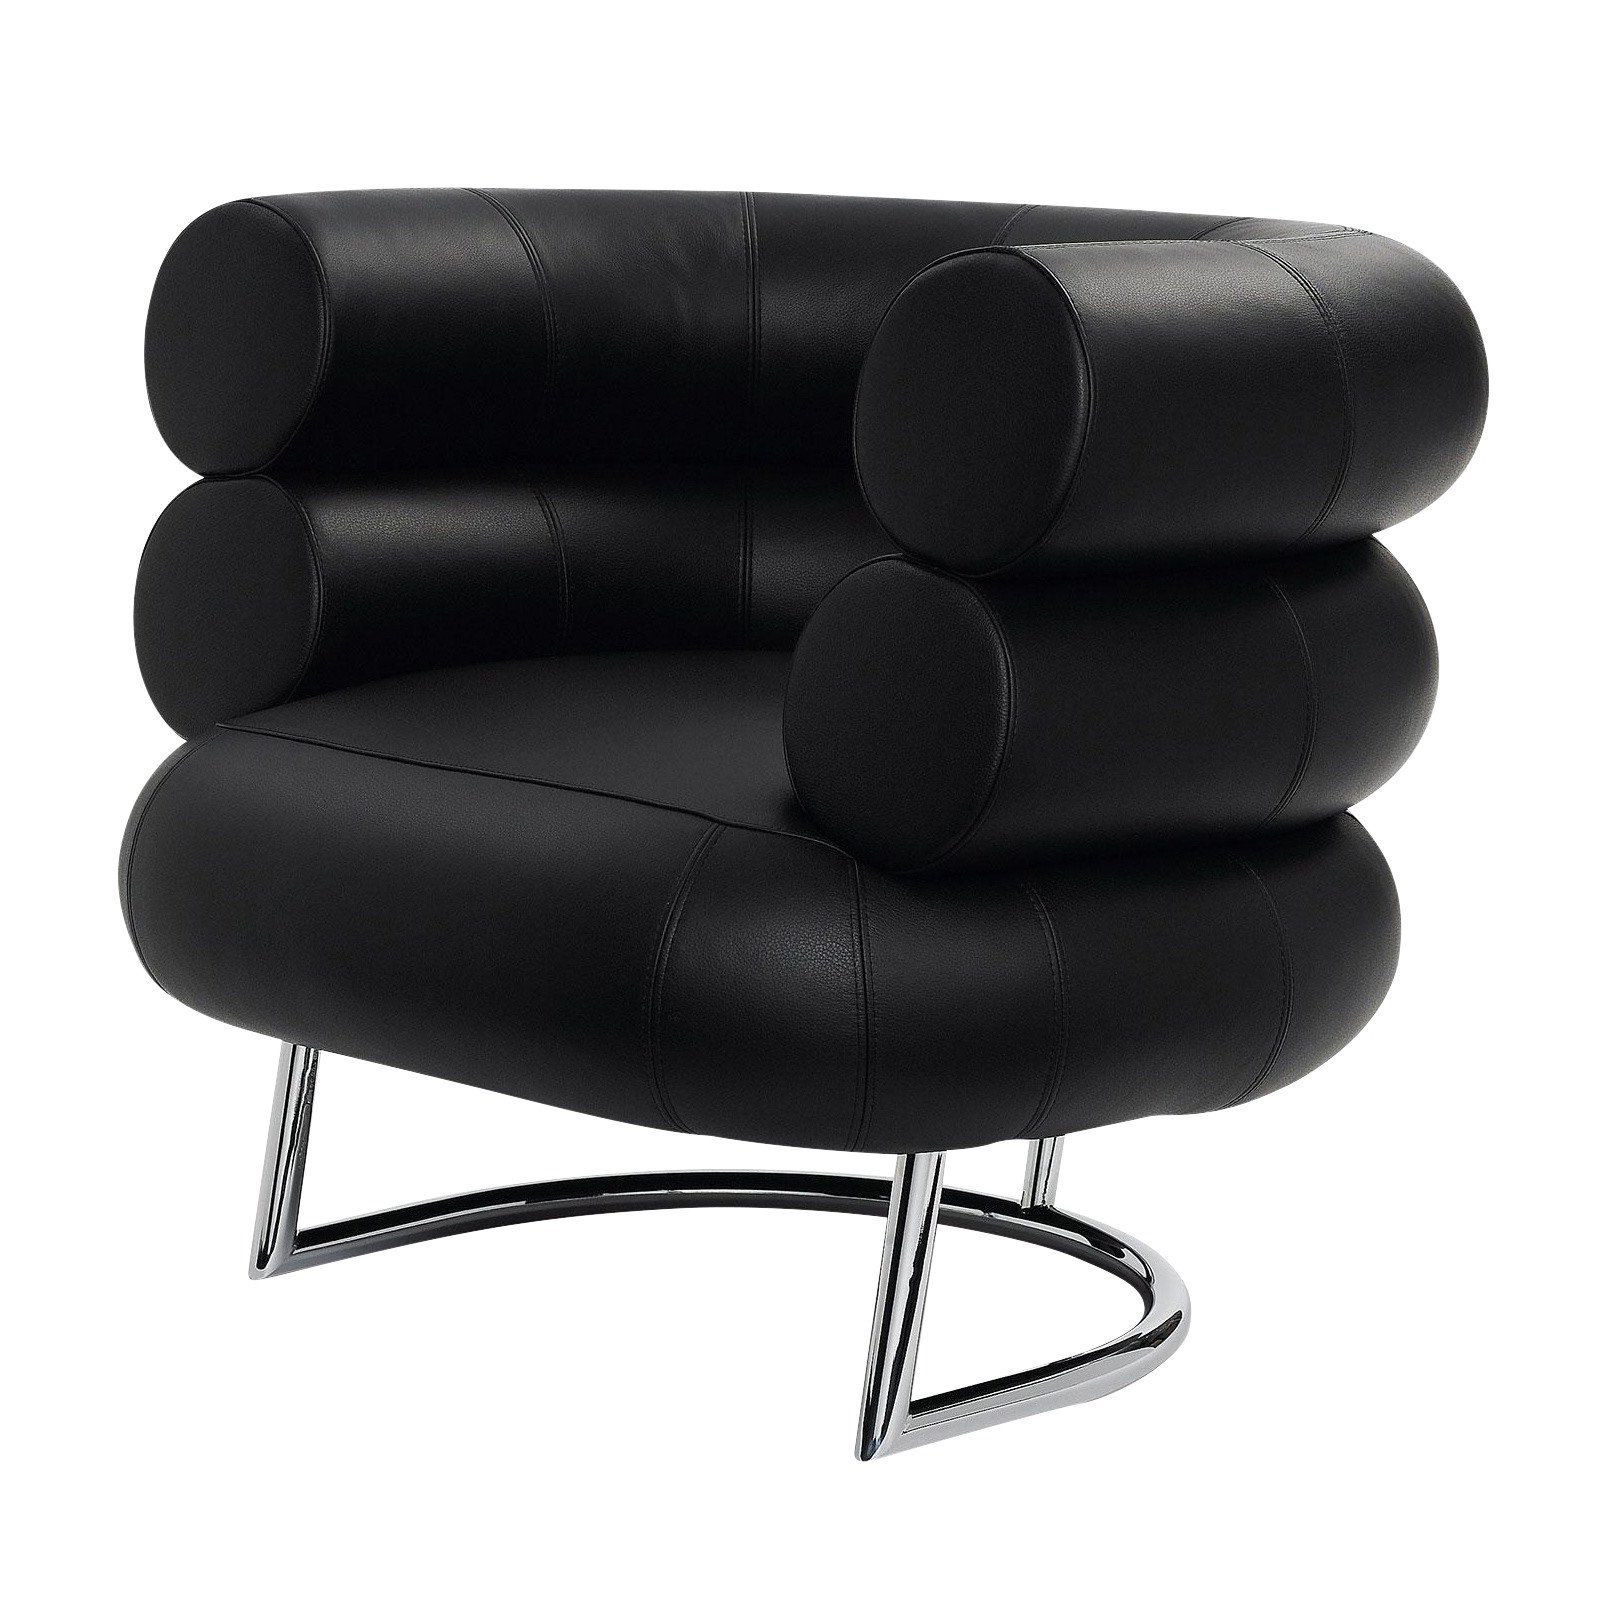 Classicon  Bibendum Armchair Frame Chrome  Blackleather Classic